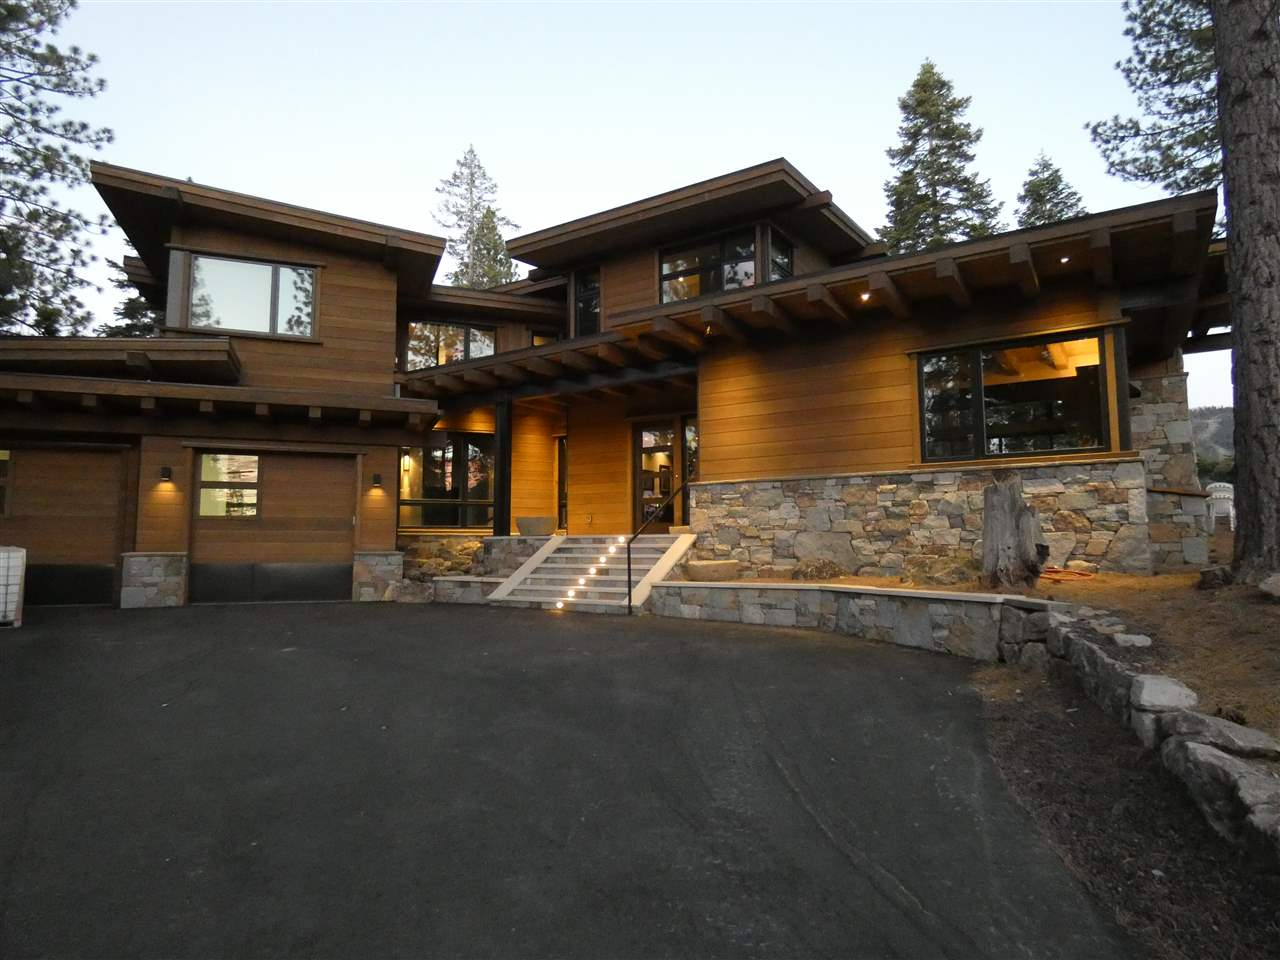 Image for 8621 Lloyd Tevis, Truckee, CA 96161-5155